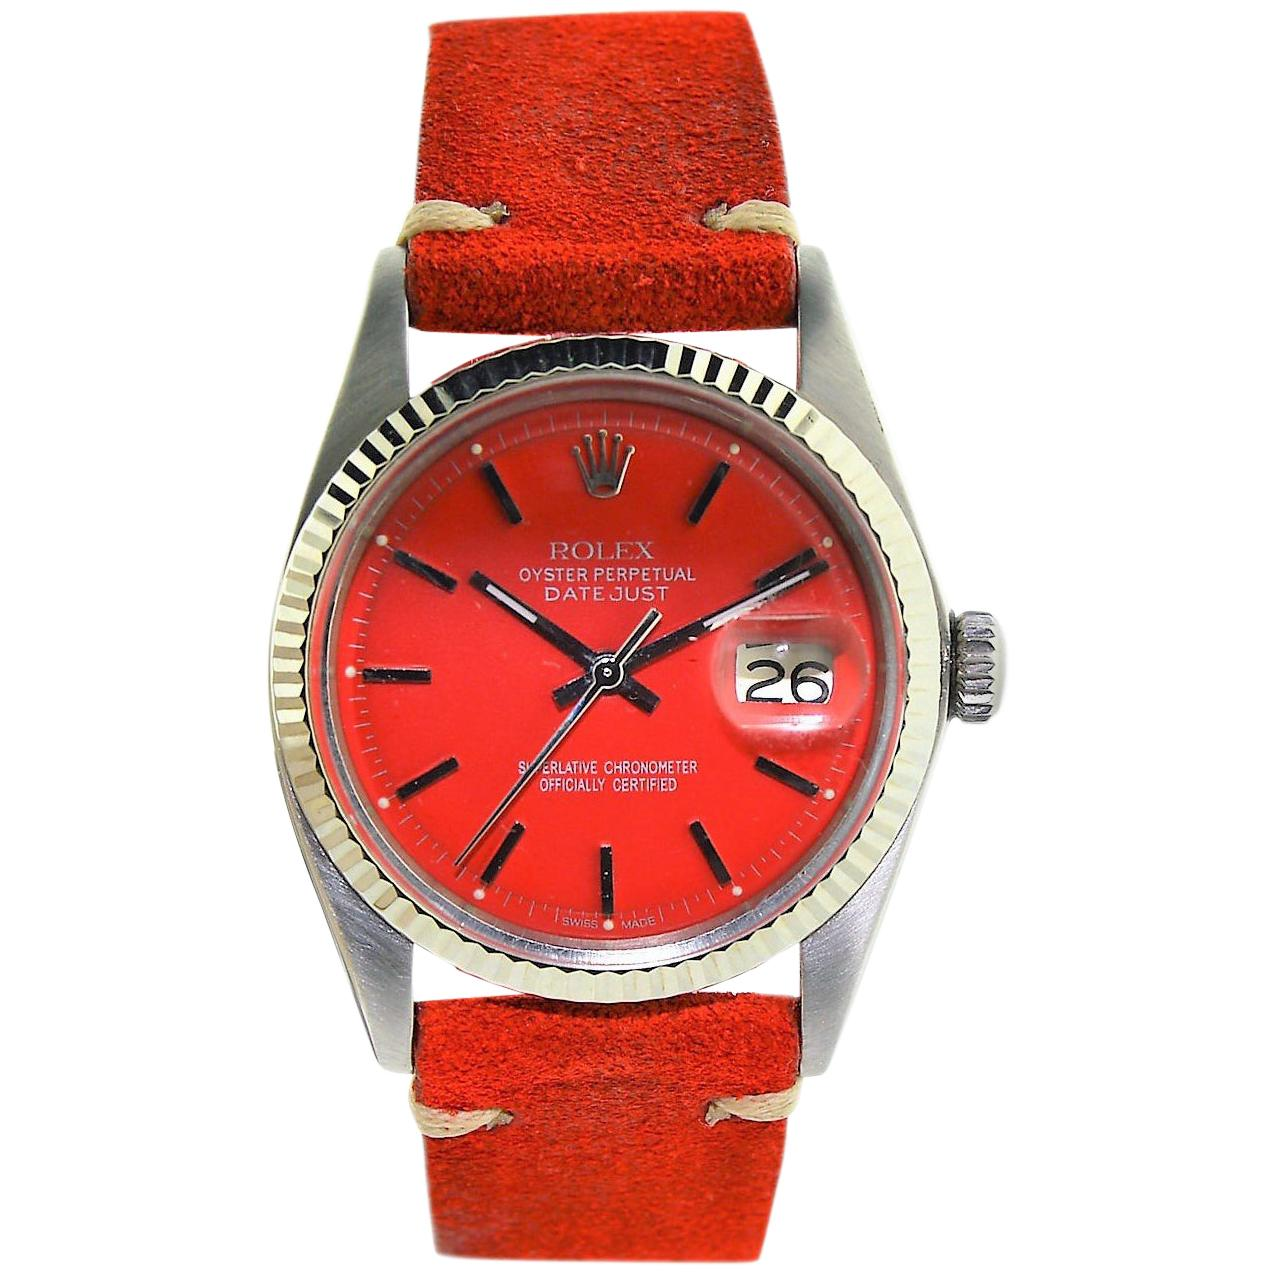 Rolex White Gold Stainless Steel Datejust Custom Red Dial Watch